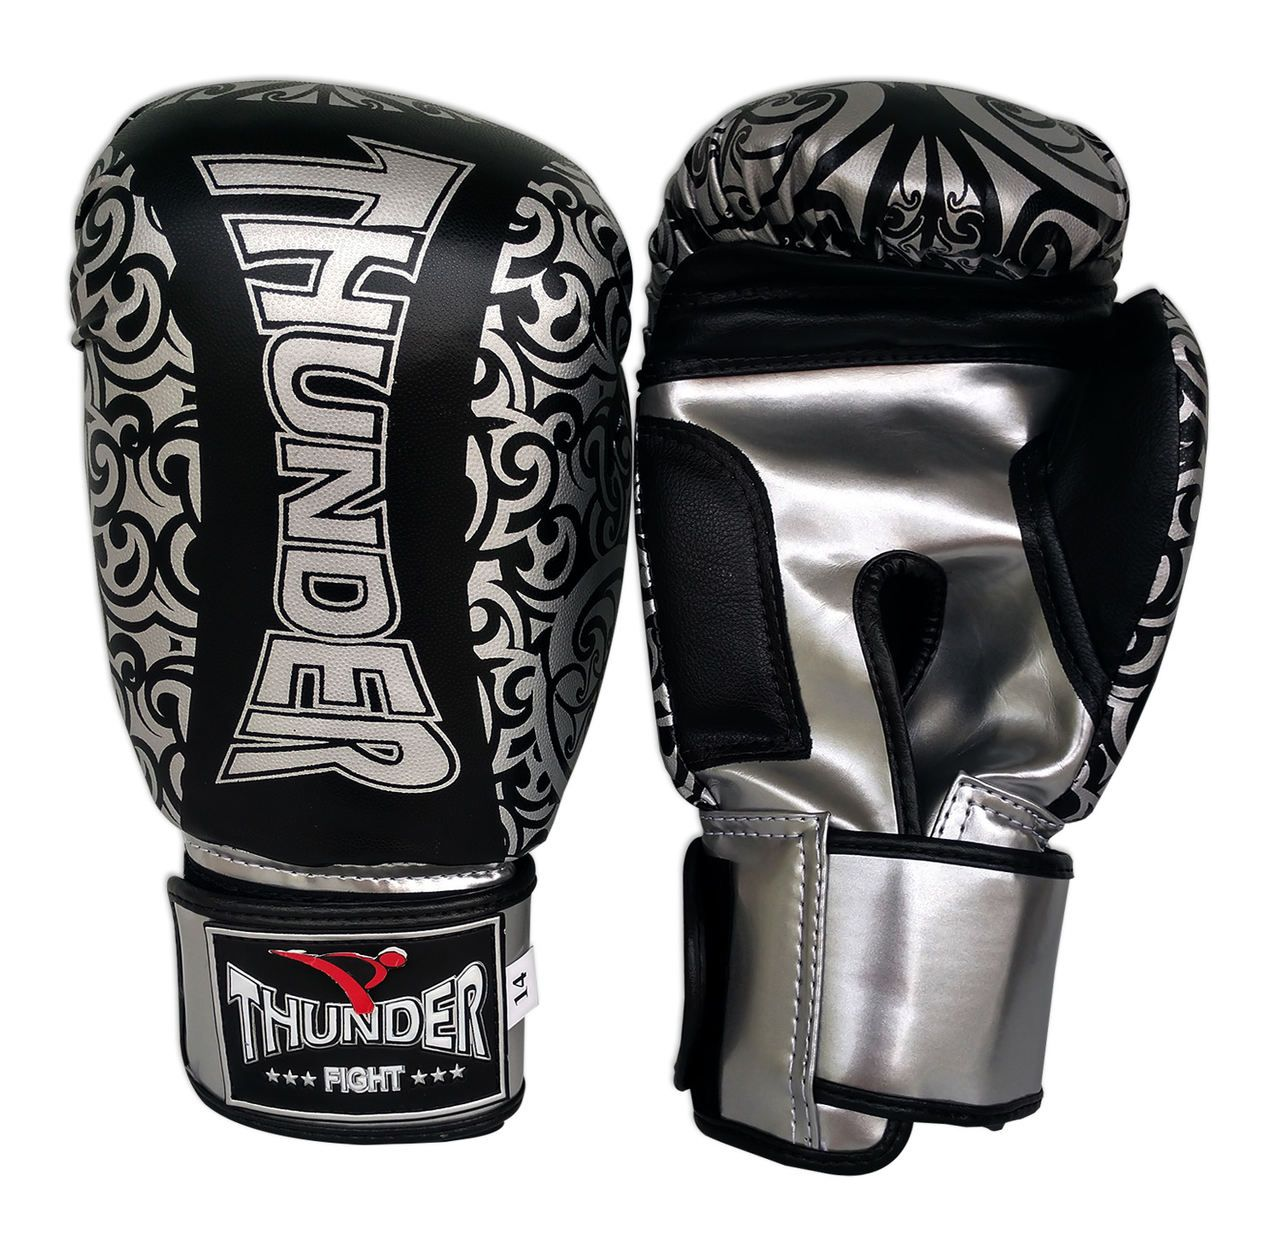 Kit de Boxe / Muay Thai 14oz - Preto com Prata Maori - Thunder Fight  - PRALUTA SHOP